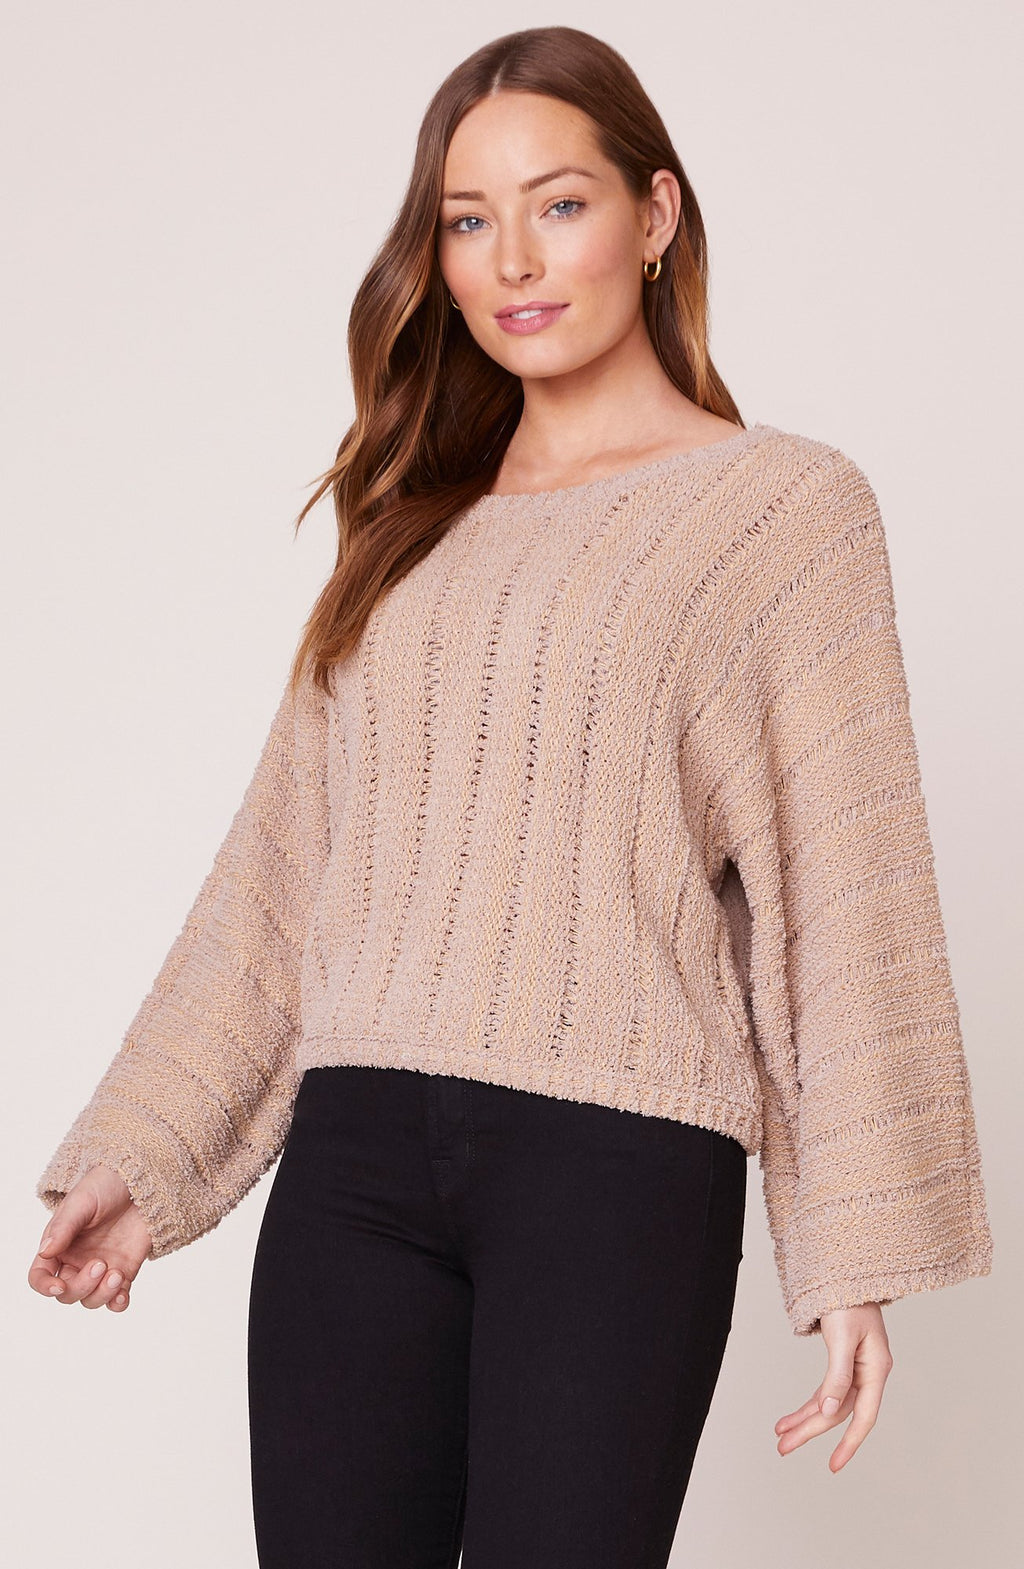 JACK BY BB DAKOTA SLIDE RIGHT SWEATER IN HAZELNUT